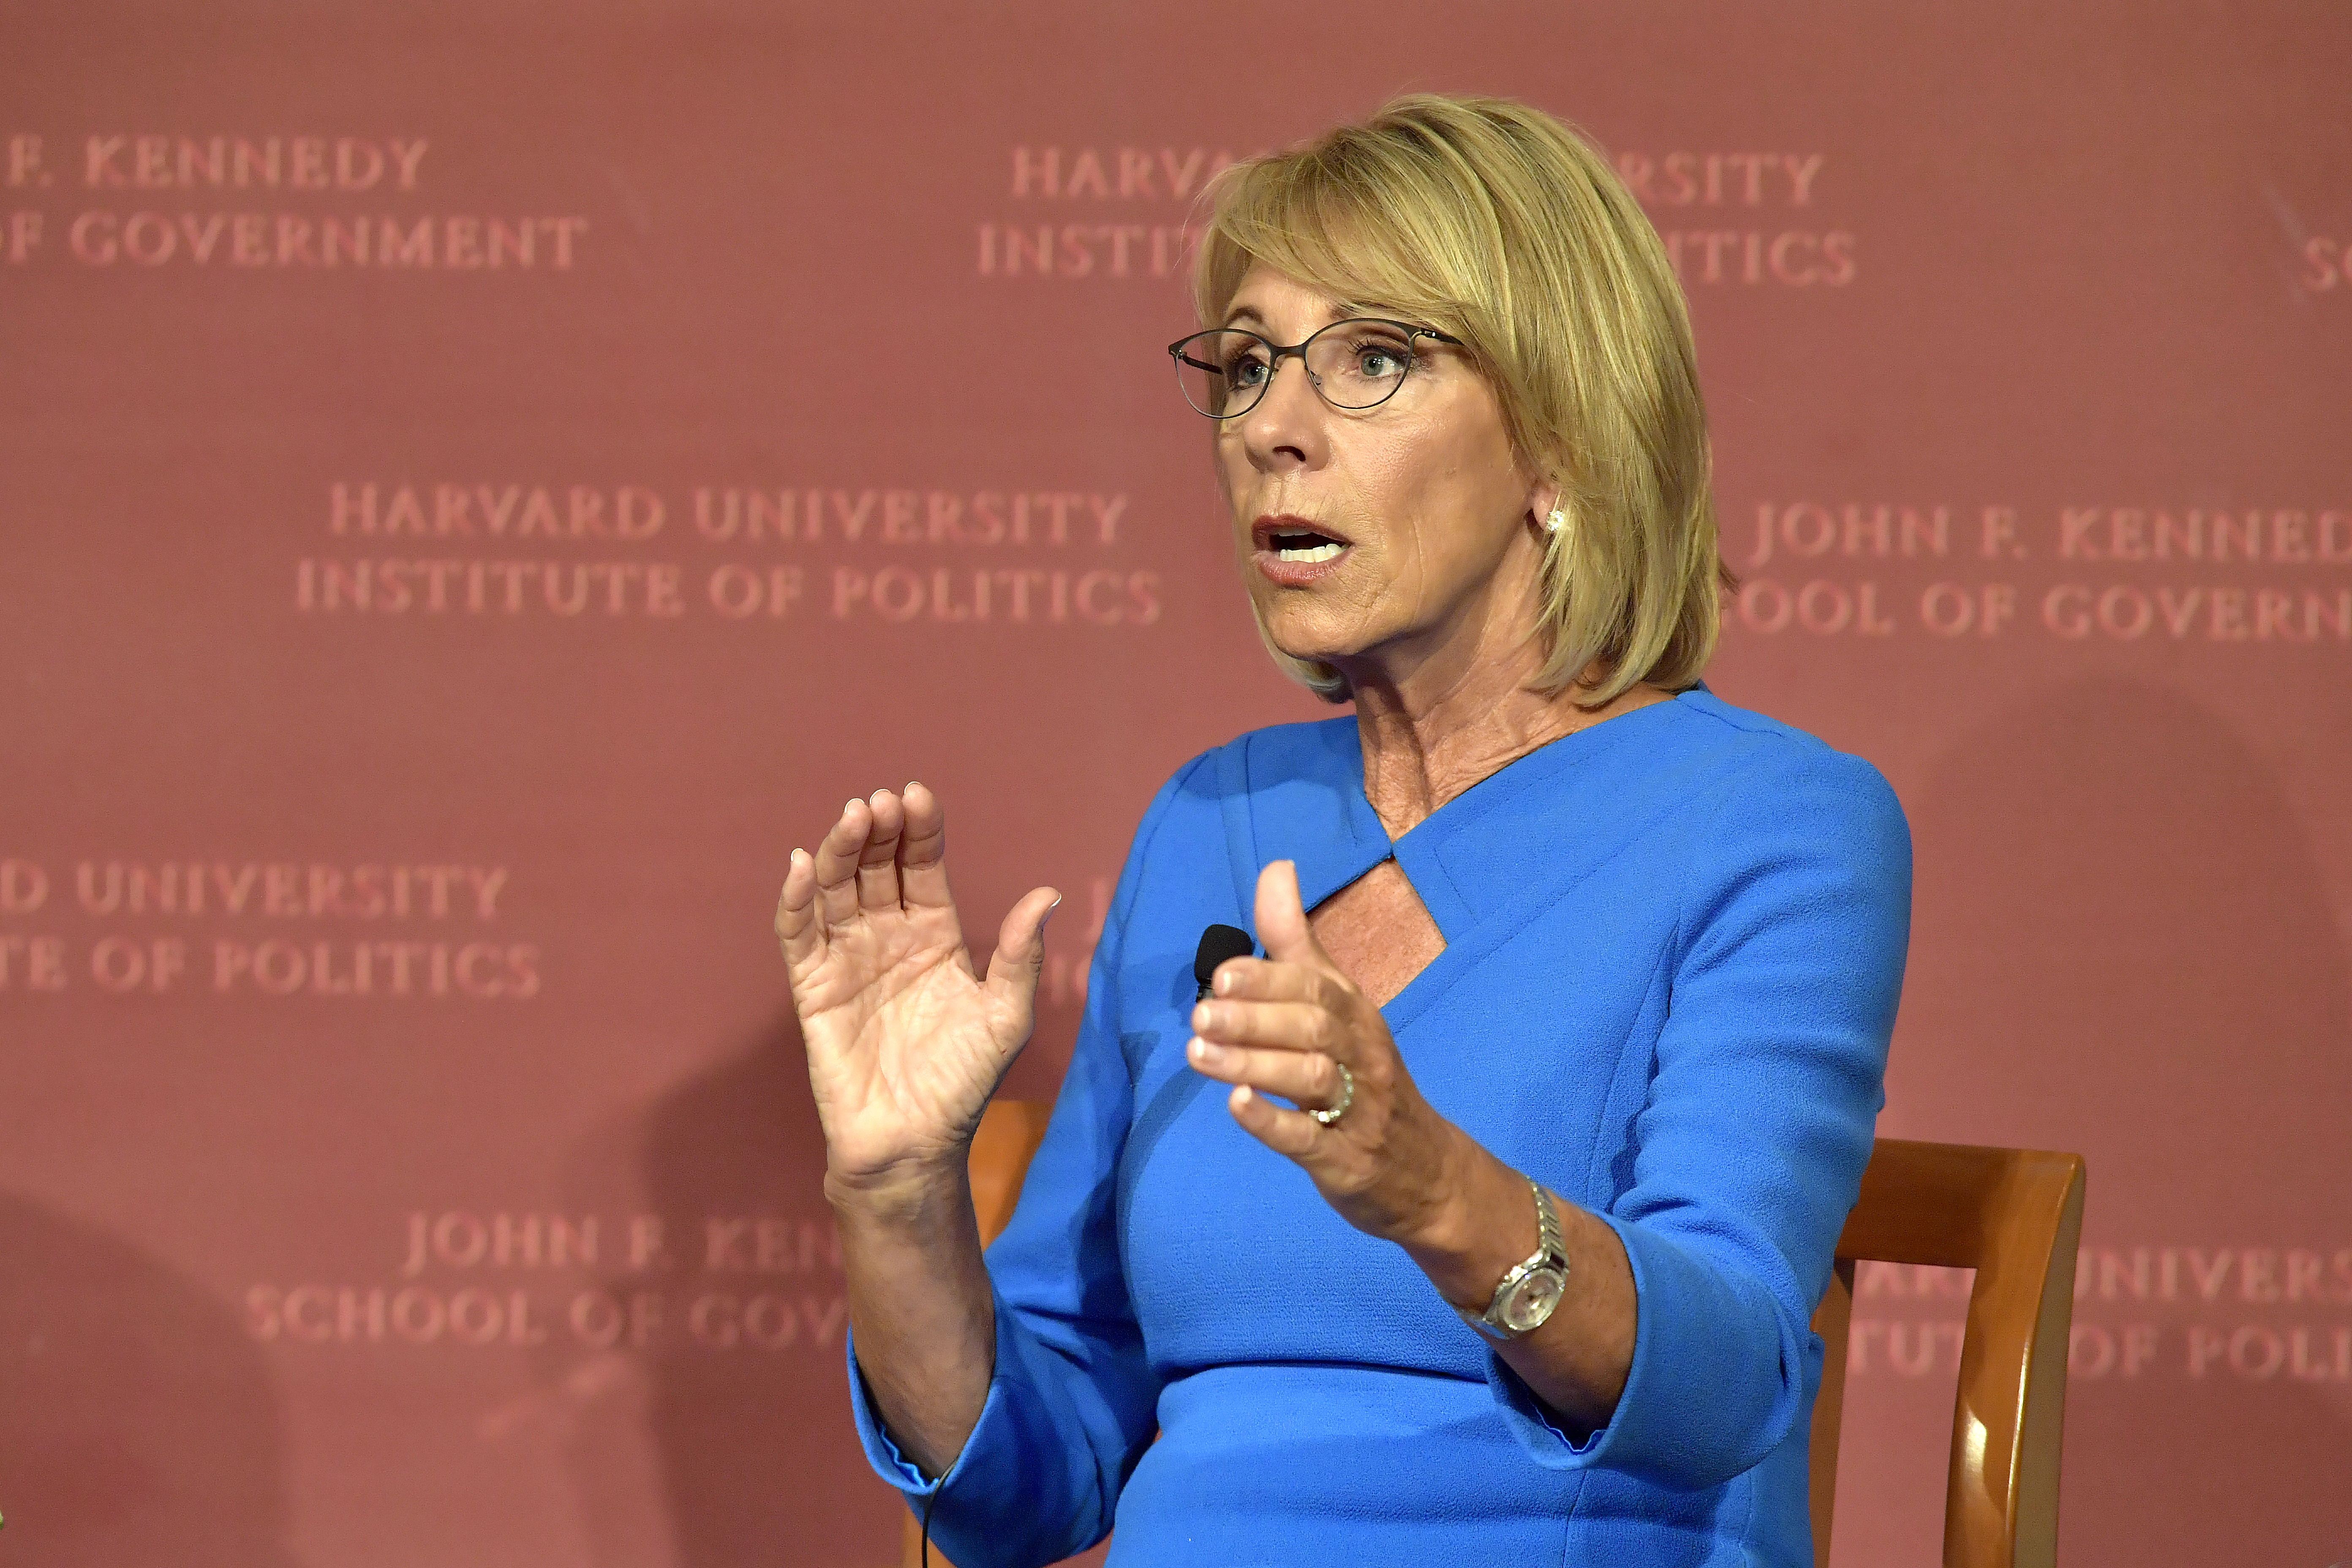 Education Secretary Betsy DeVos speaks at the Harvard University John F. Kennedy Jr. Forum on  A Conversation On Empowering Parents  moderated by Paul Peterson on Sept. 28, 2017 in Cambridge, Massachusetts.